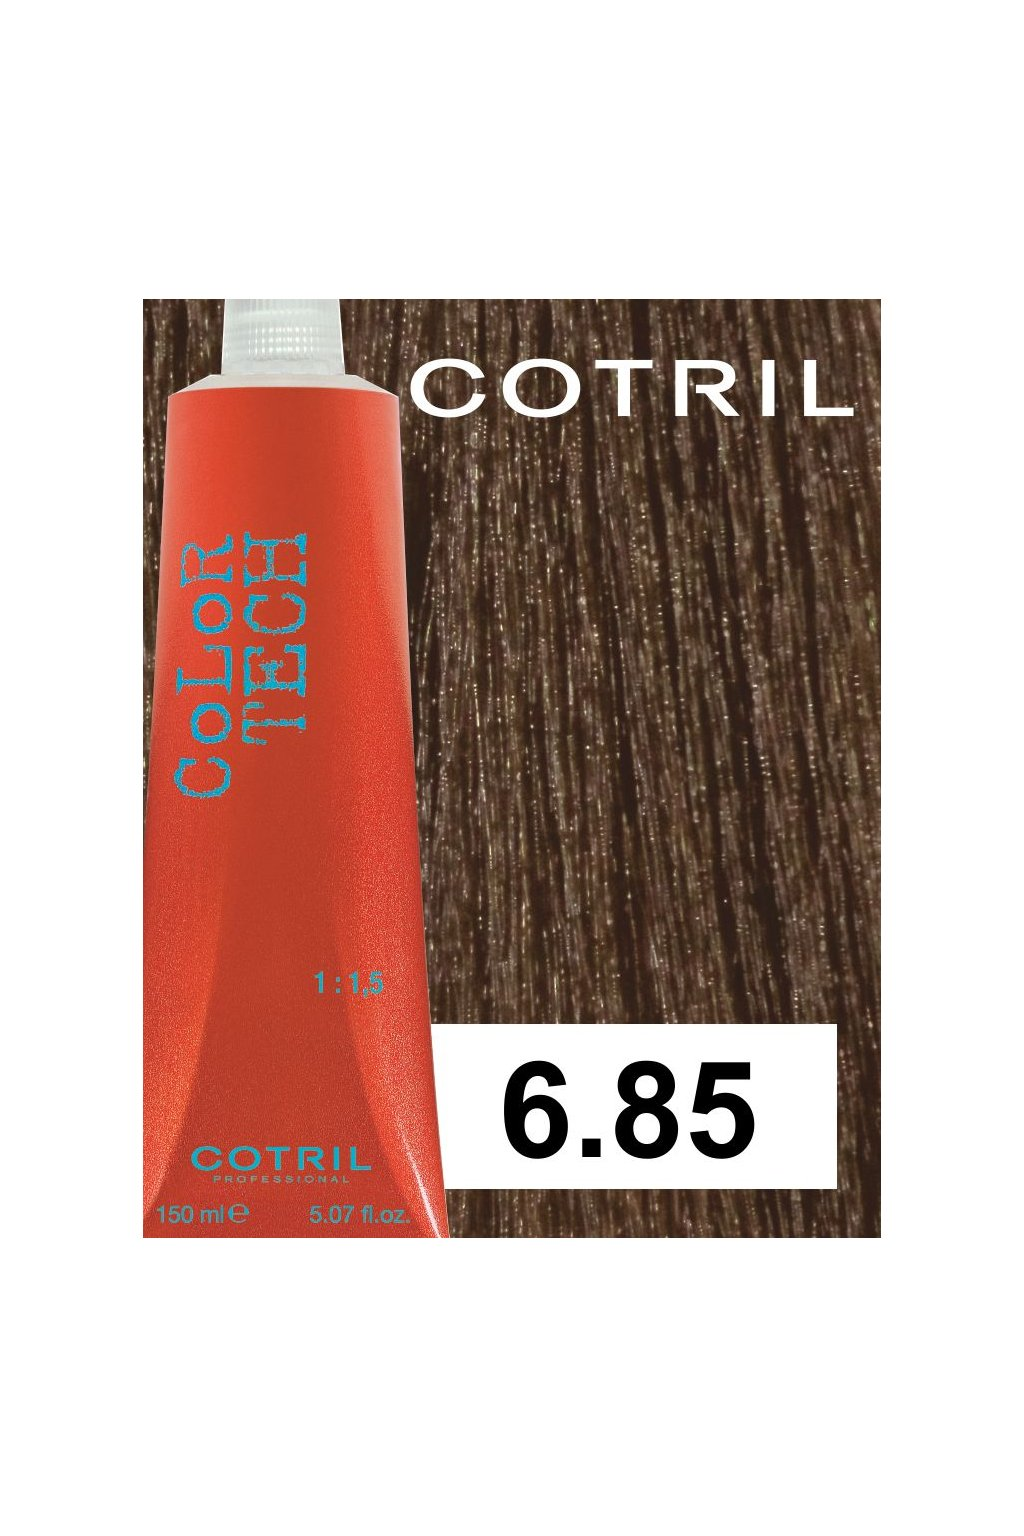 6 85 ct cotril